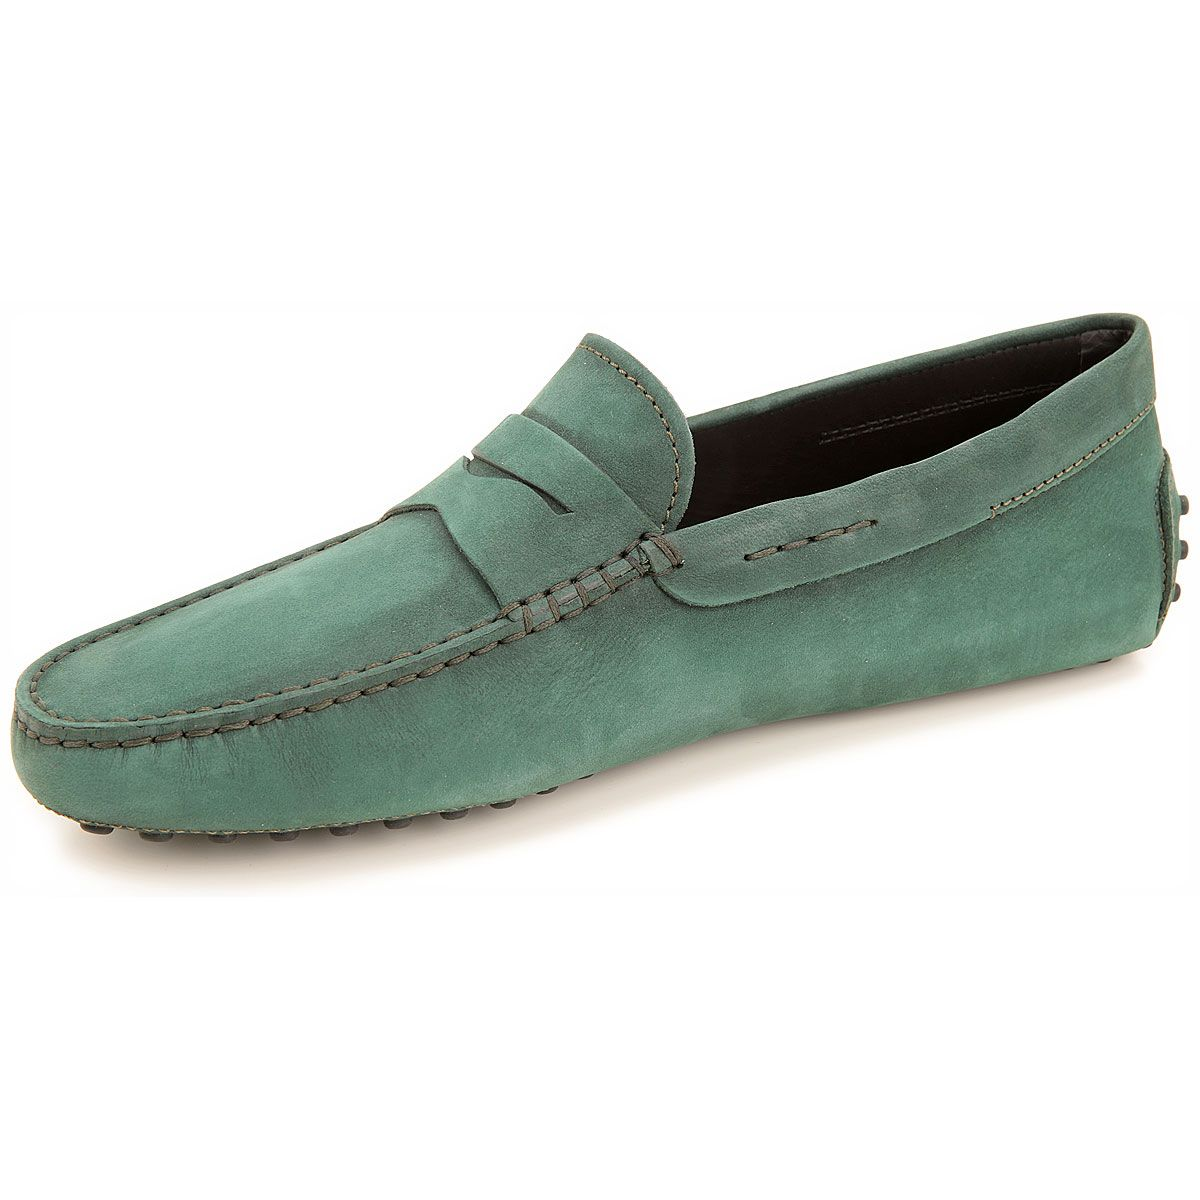 Tods lime green must have shoe